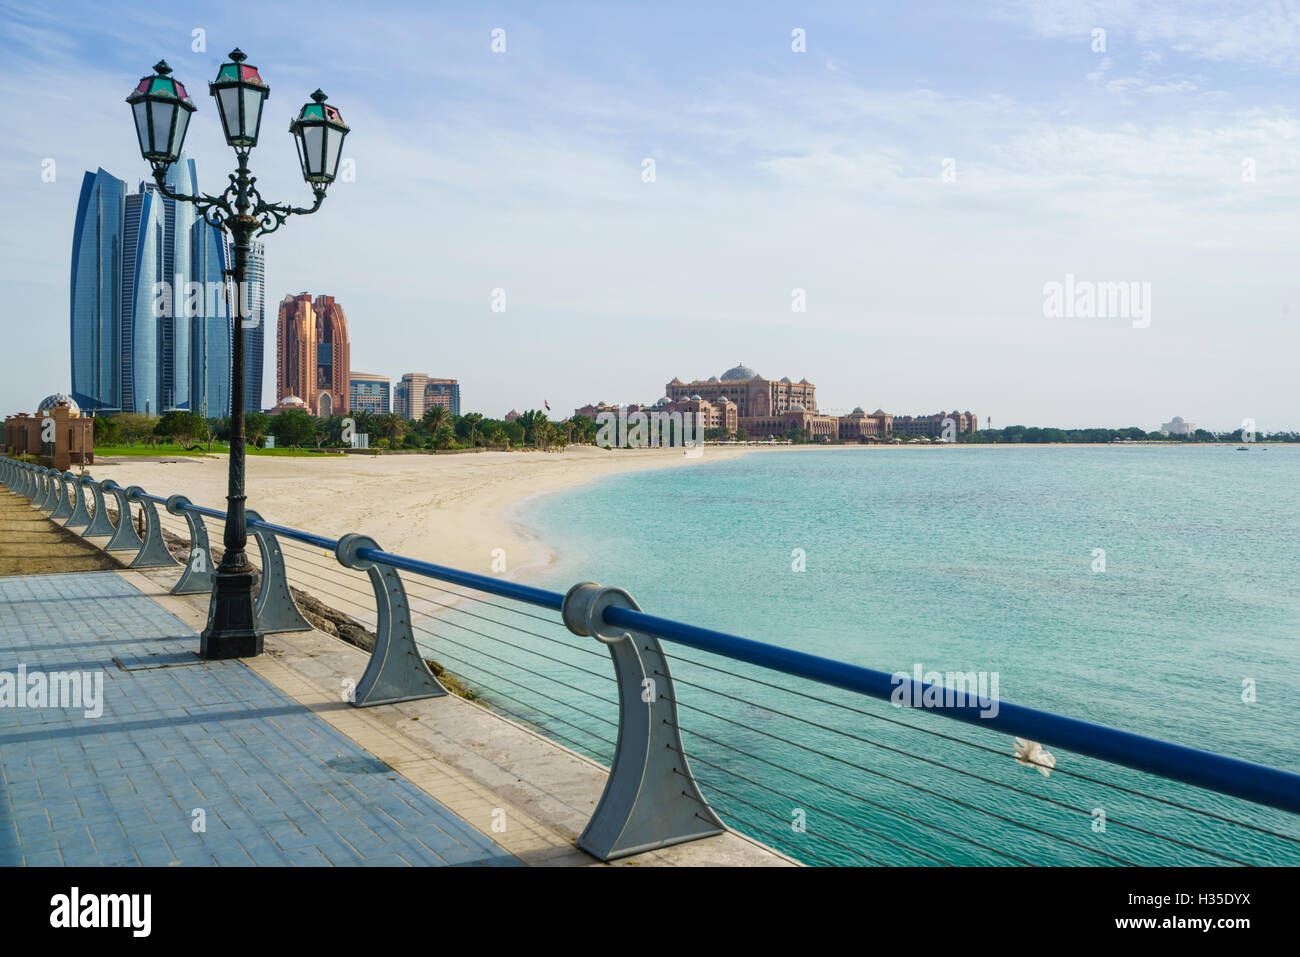 View from the Breakwater towards Etihad Towers and Emirates Palace Hotel and beach, Abu Dhabi, United Arab Emirates, - Stock Image